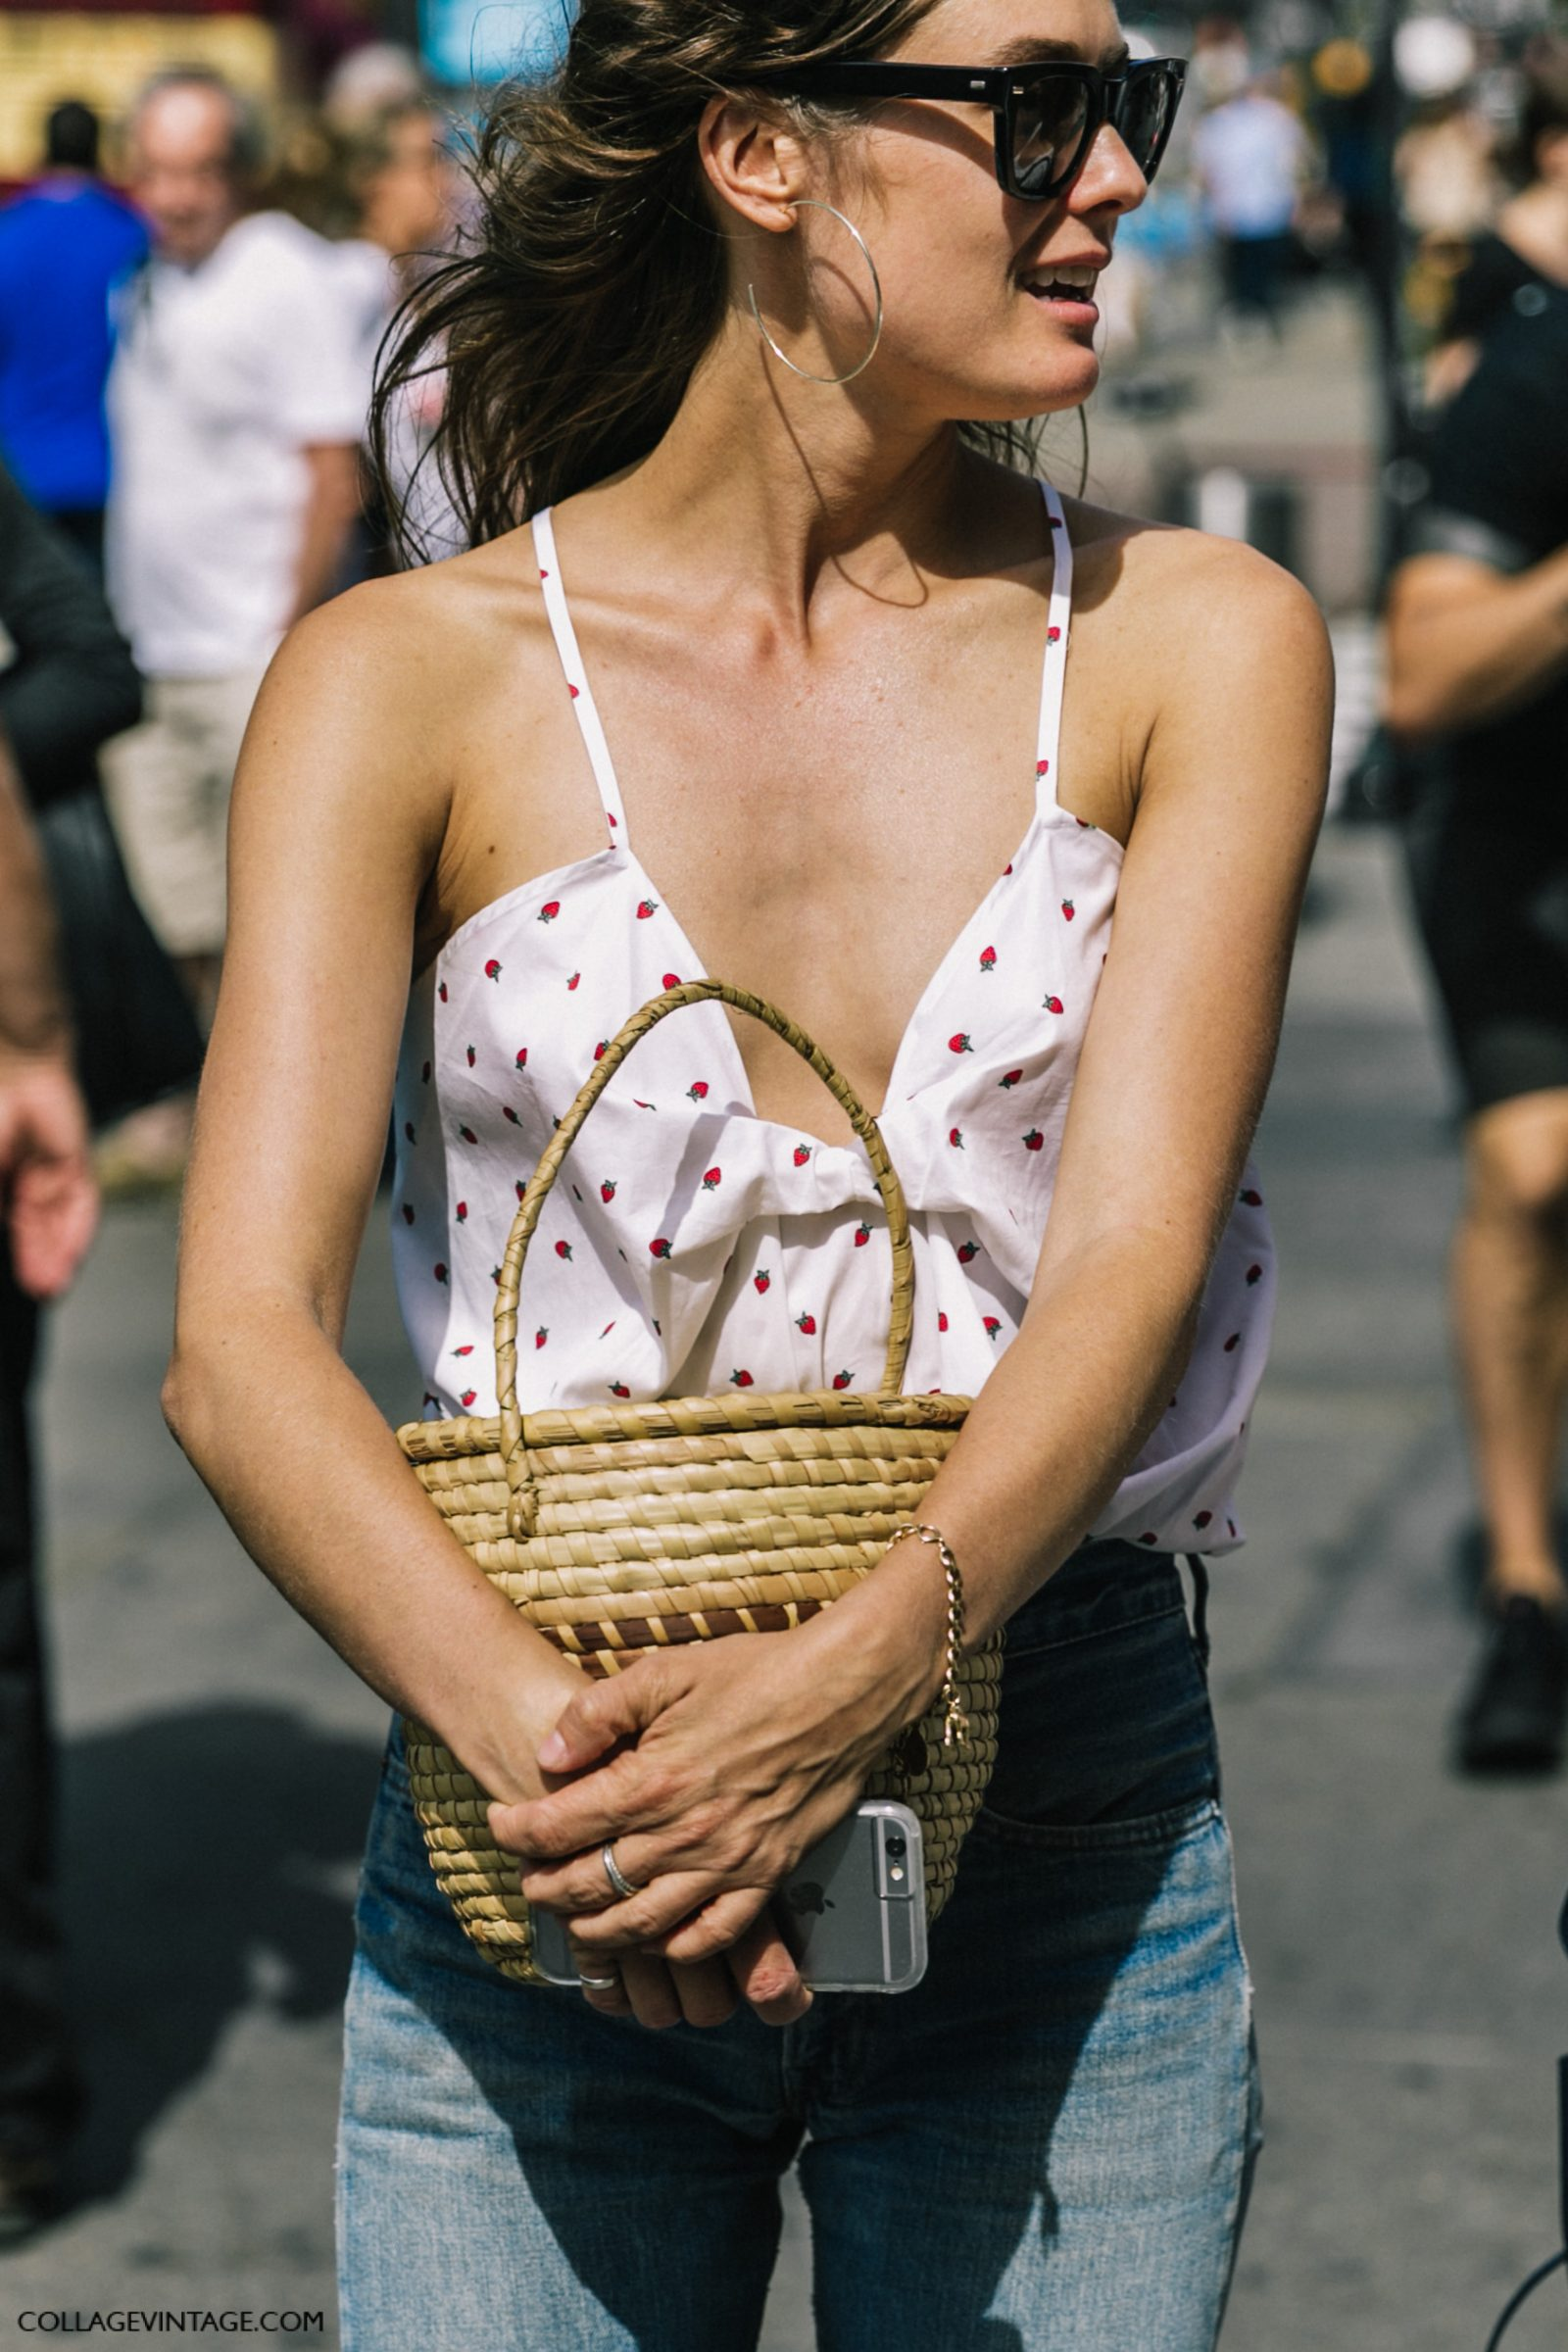 nyfw-new_york_fashion_week_ss17-street_style-outfits-collage_vintage-vintage-tome-163